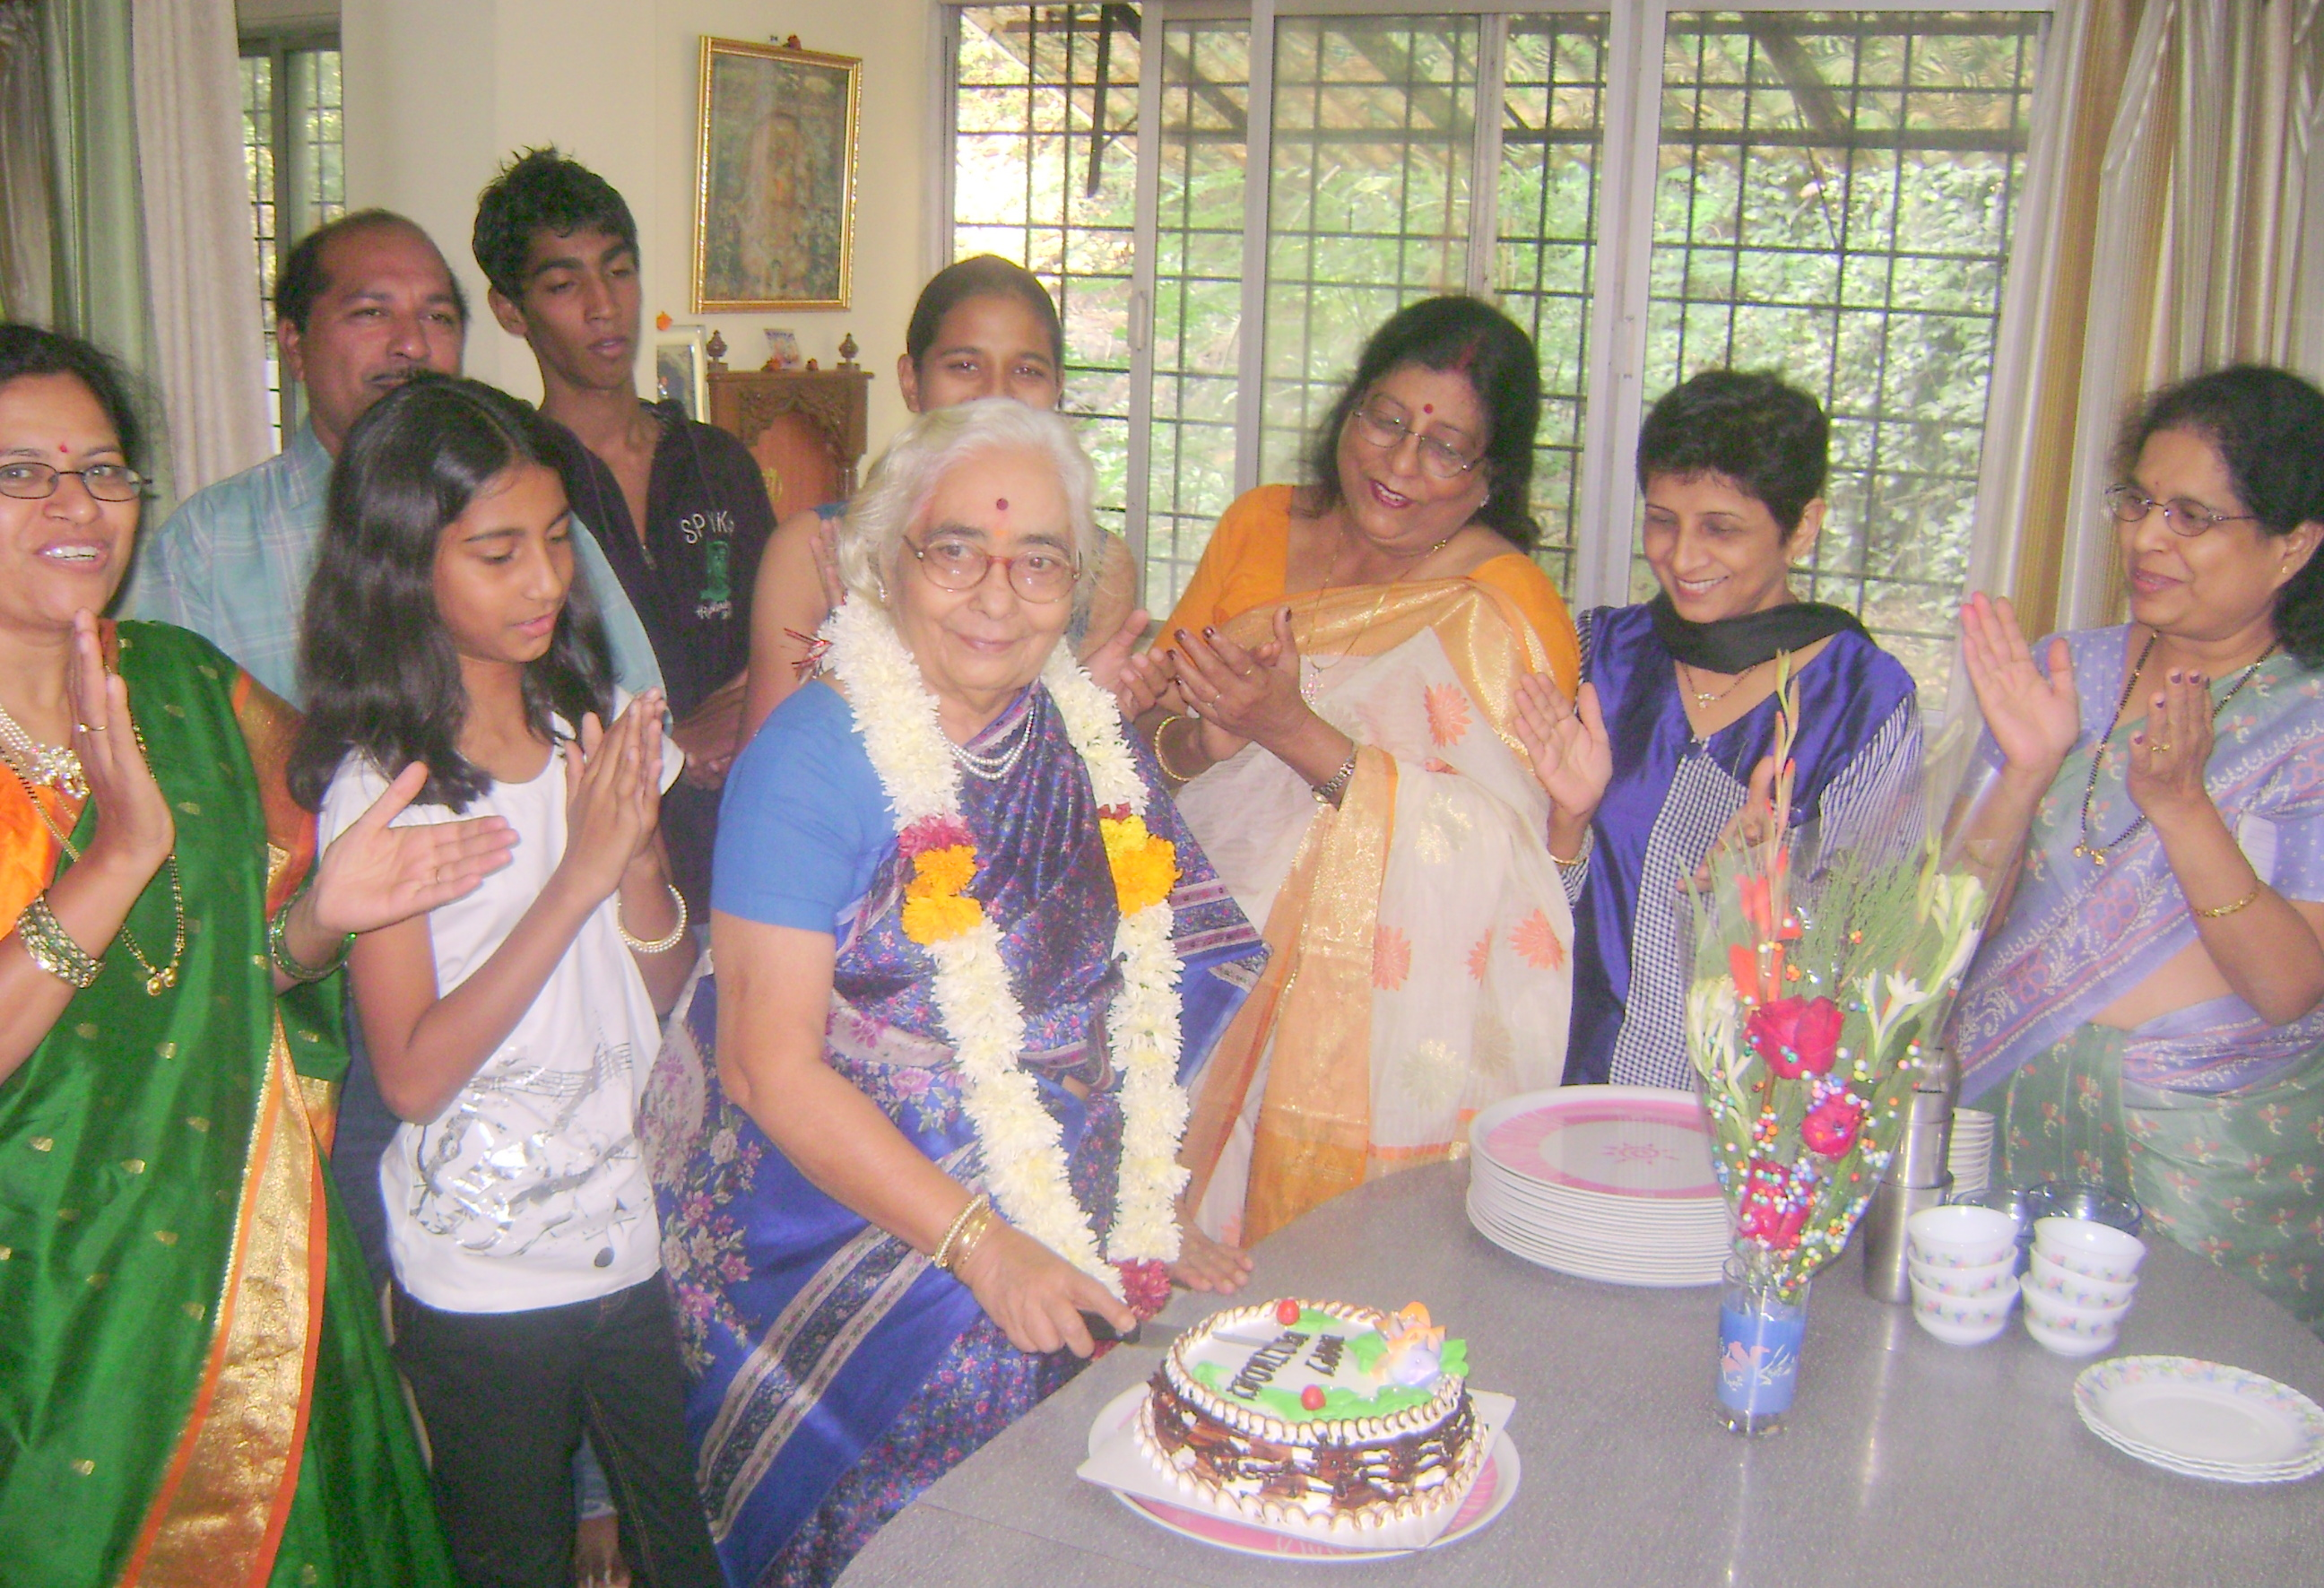 A family gets together to celebrate their grandmother's 80th birthday in Pune, India. Photo by You4youths. This image is from Wikimedia, and is in the public domain.